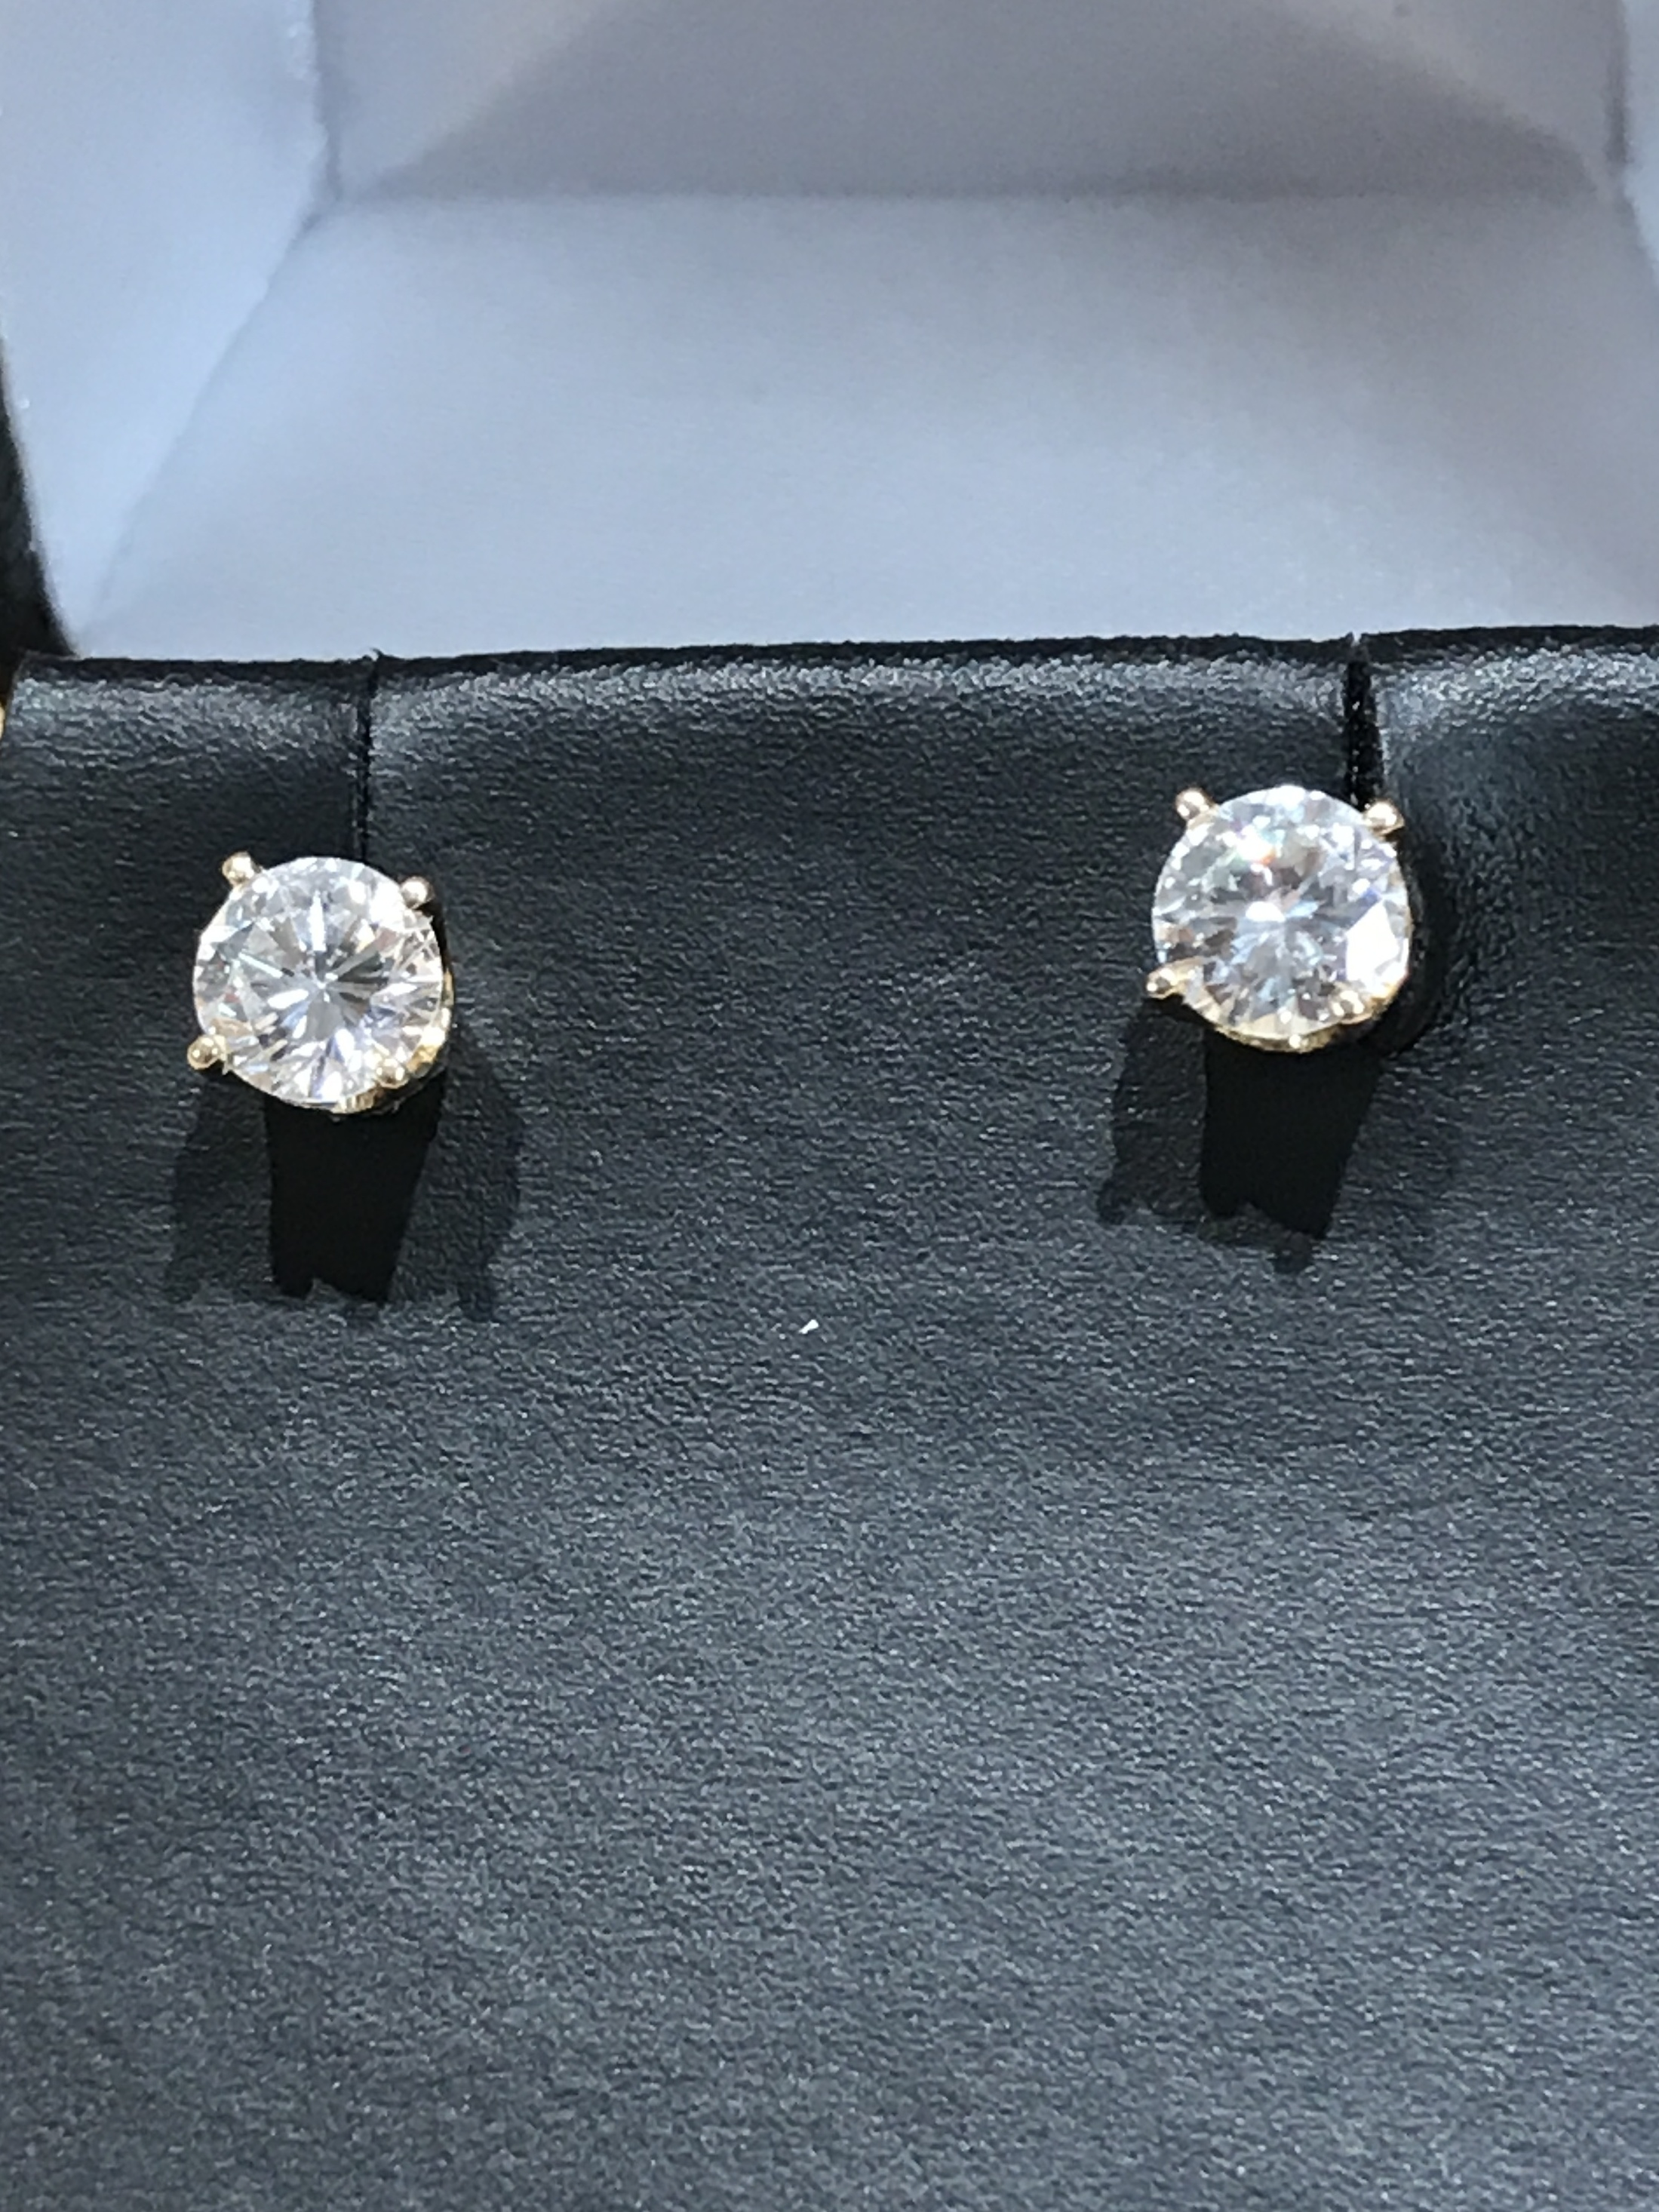 EAR RINGS 14K YELLOW GOLD WITH CLEAR DIAMOND STUDS